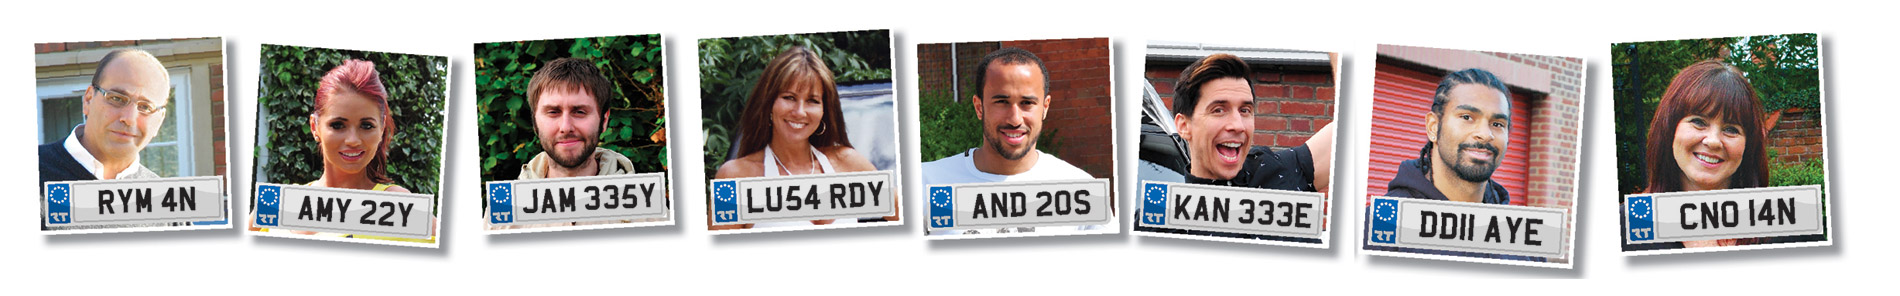 name private personalised number plates -  Celebrity Customers at regtransfers